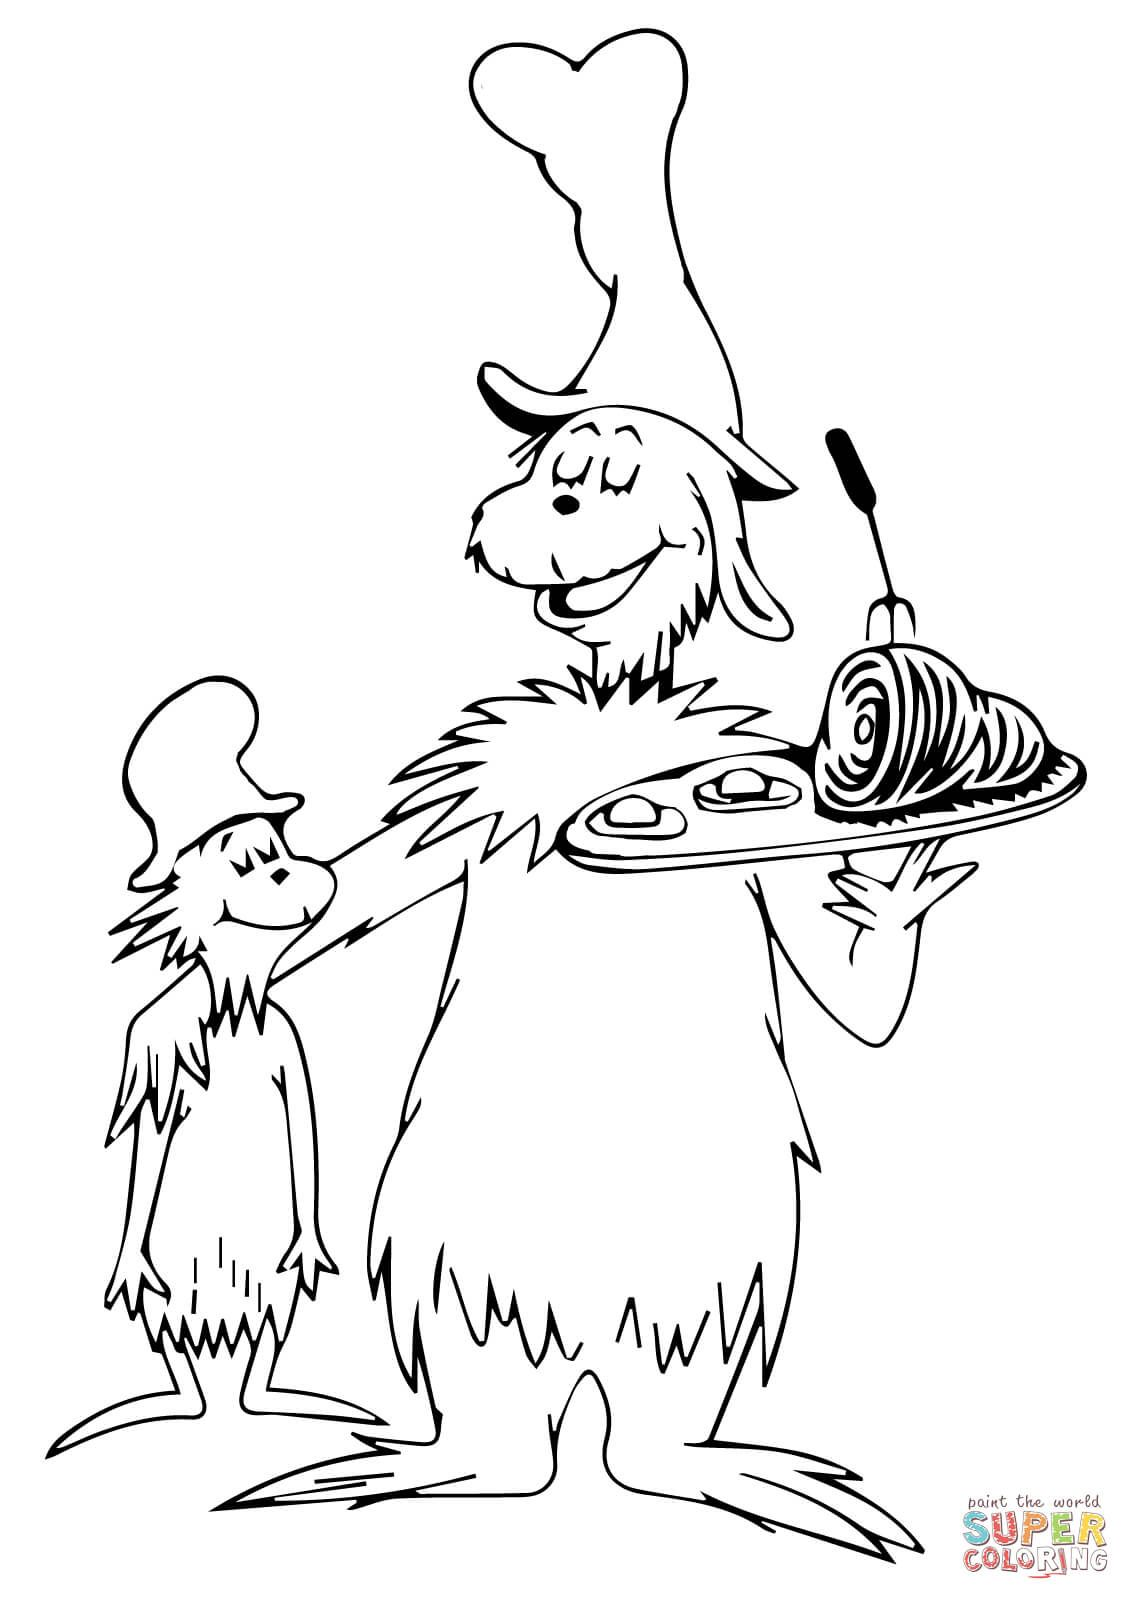 green eggs and ham coloring page  dr seuss coloring pages